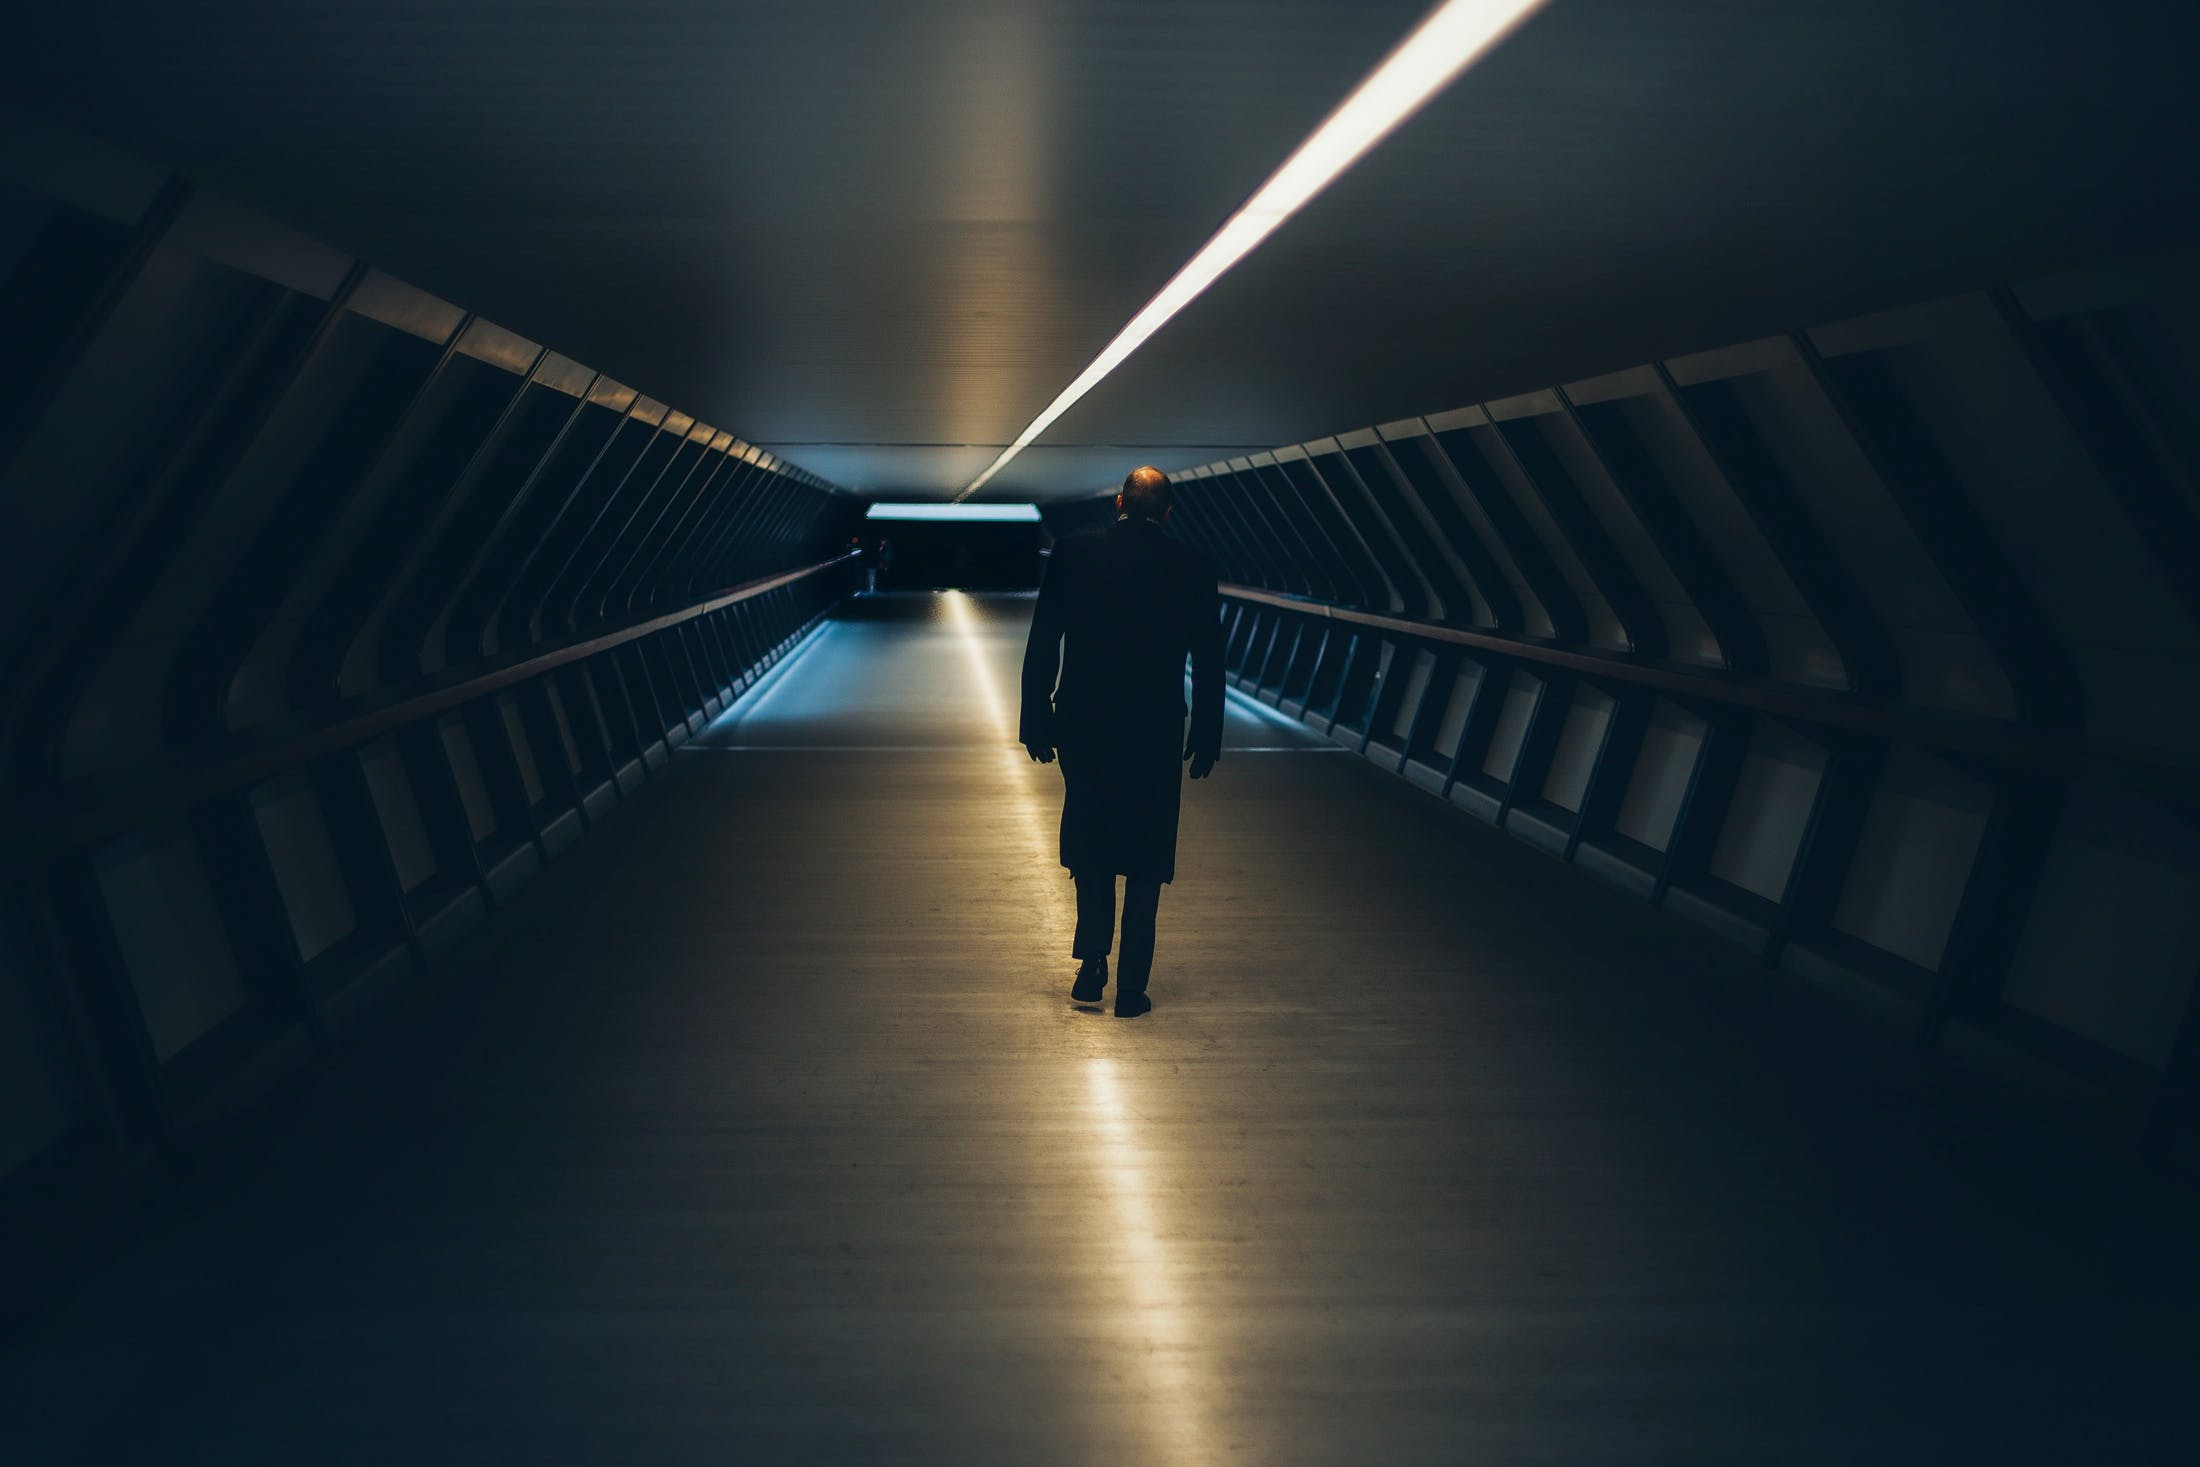 Man on Escalator in Illuminated Room